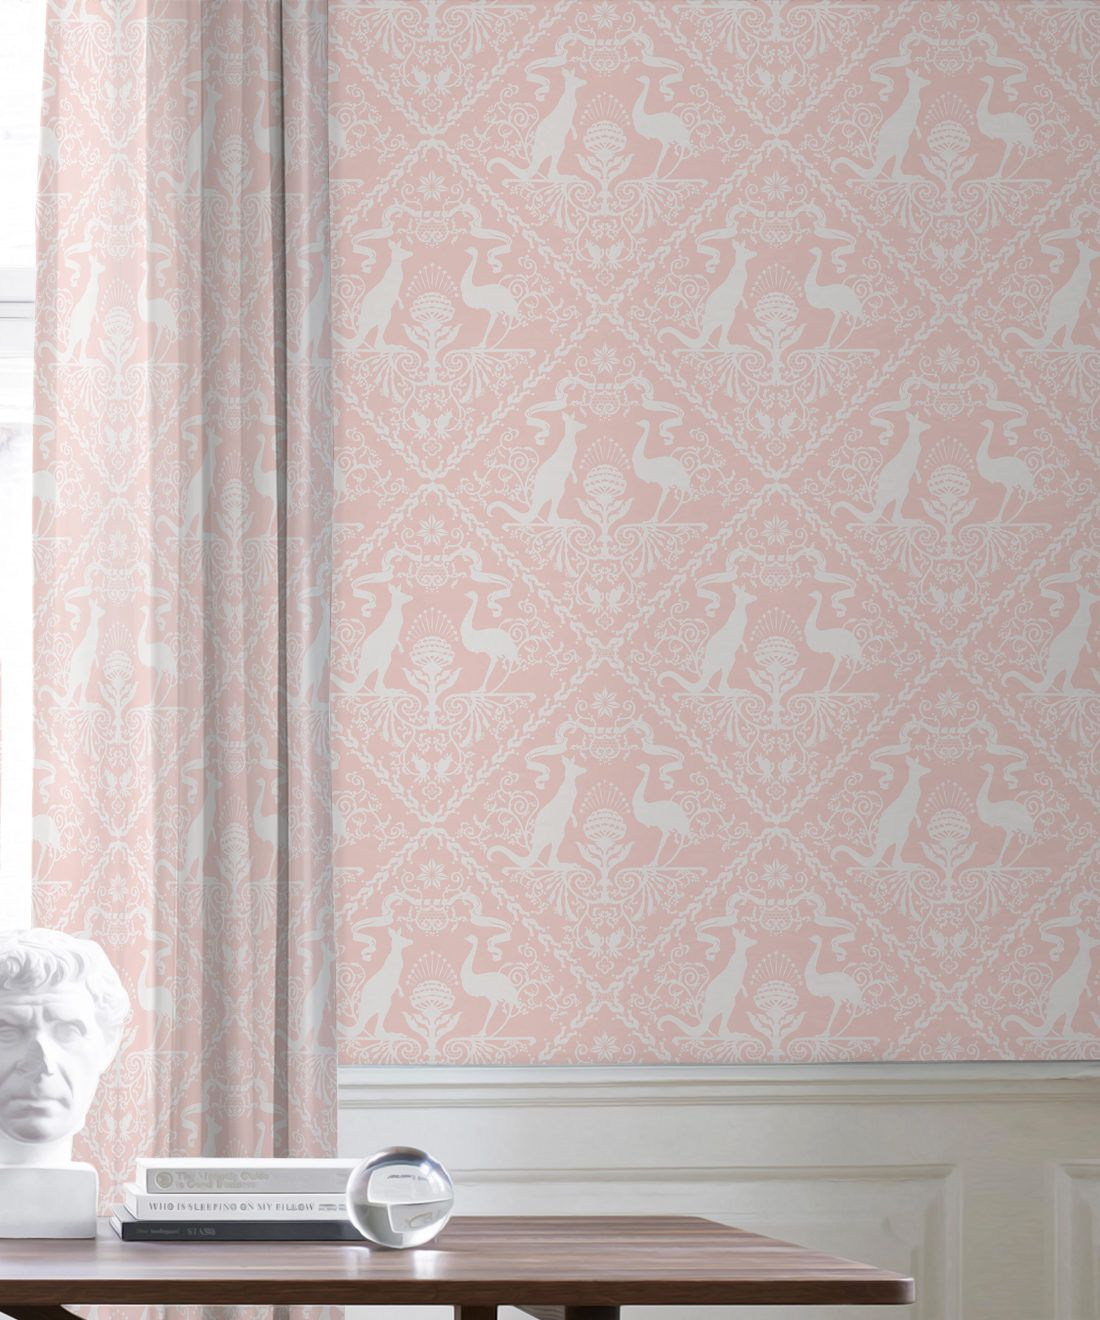 In Australia We Trust Coral • Australian Wallpaper • Australian Coat of Arms • Milton & King USA • Pink Wallpaper